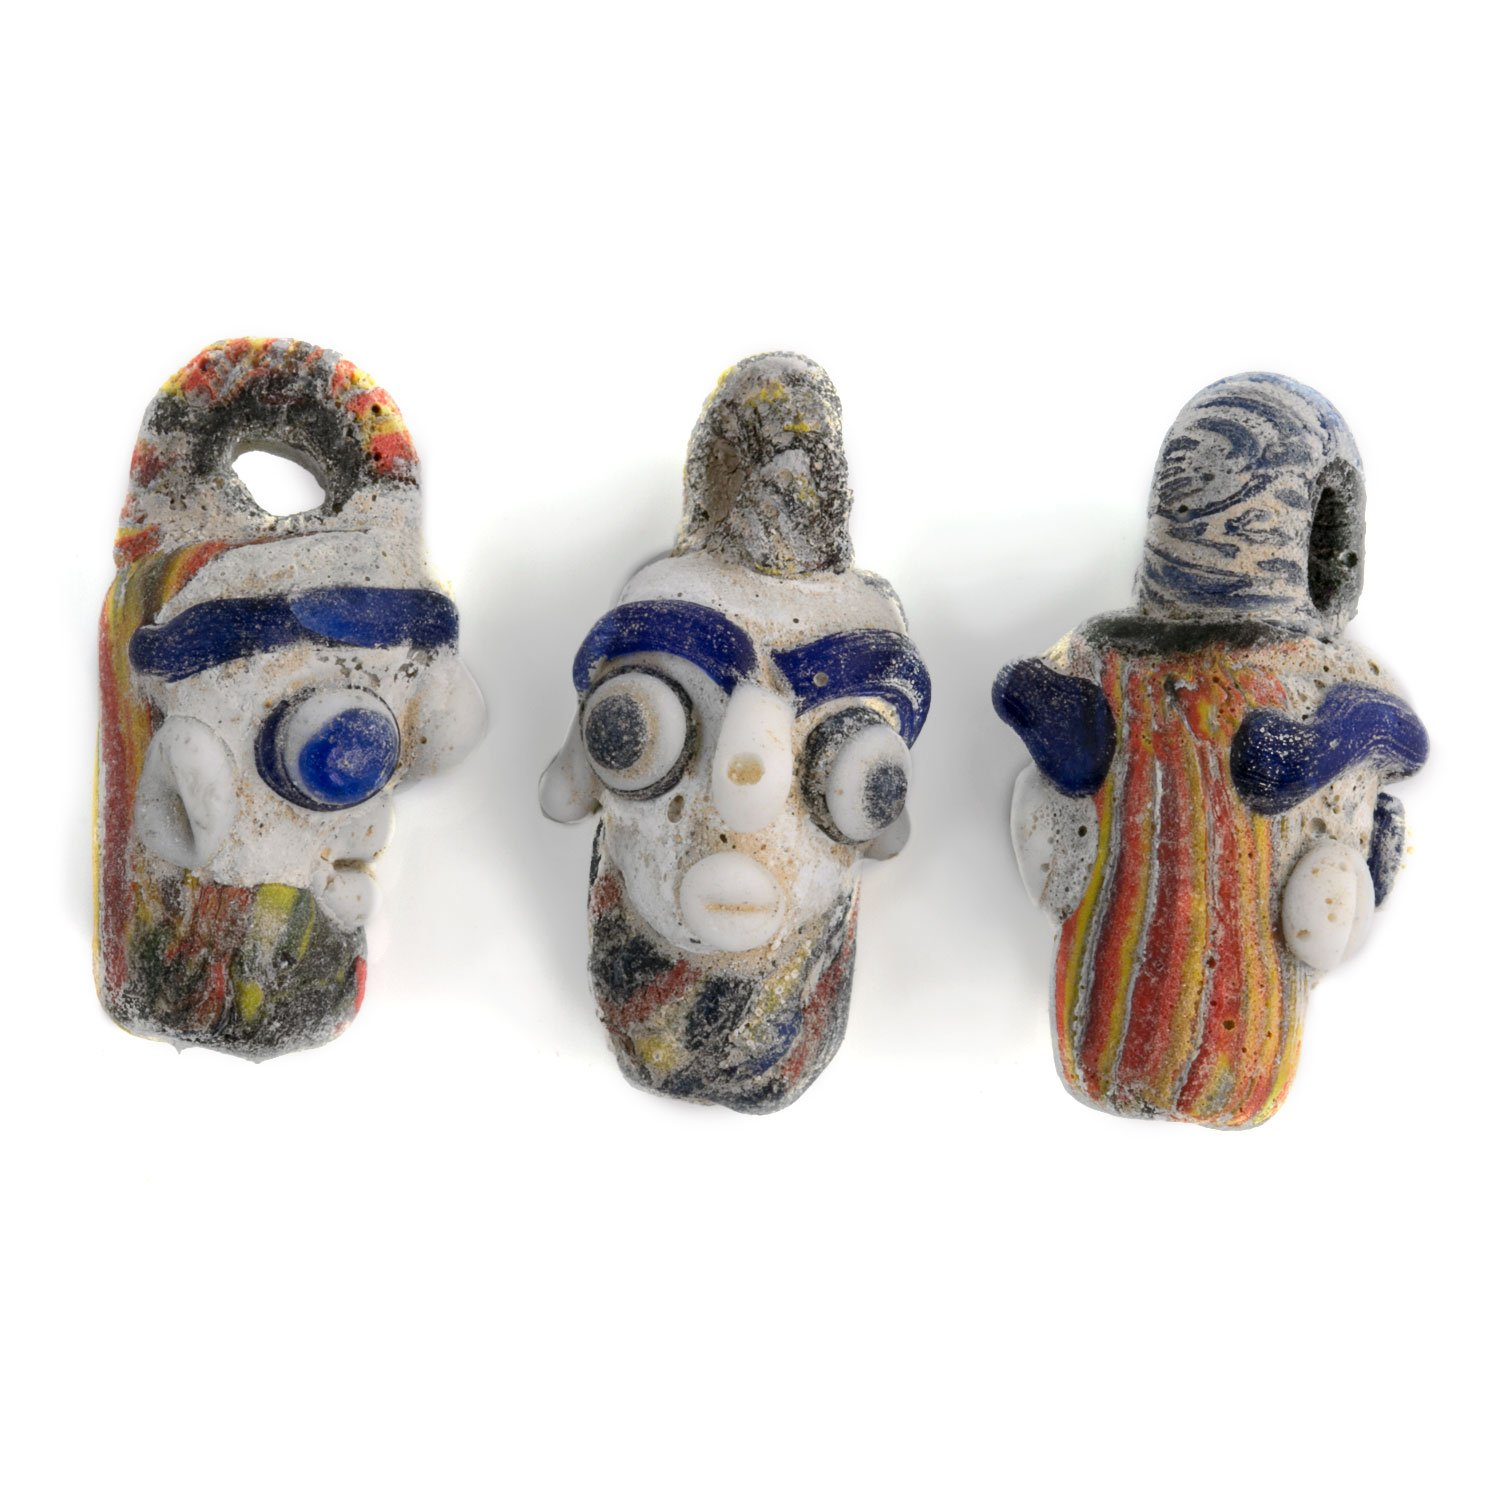 Ancient Phoenicia glass head pendant reproduction. Sold